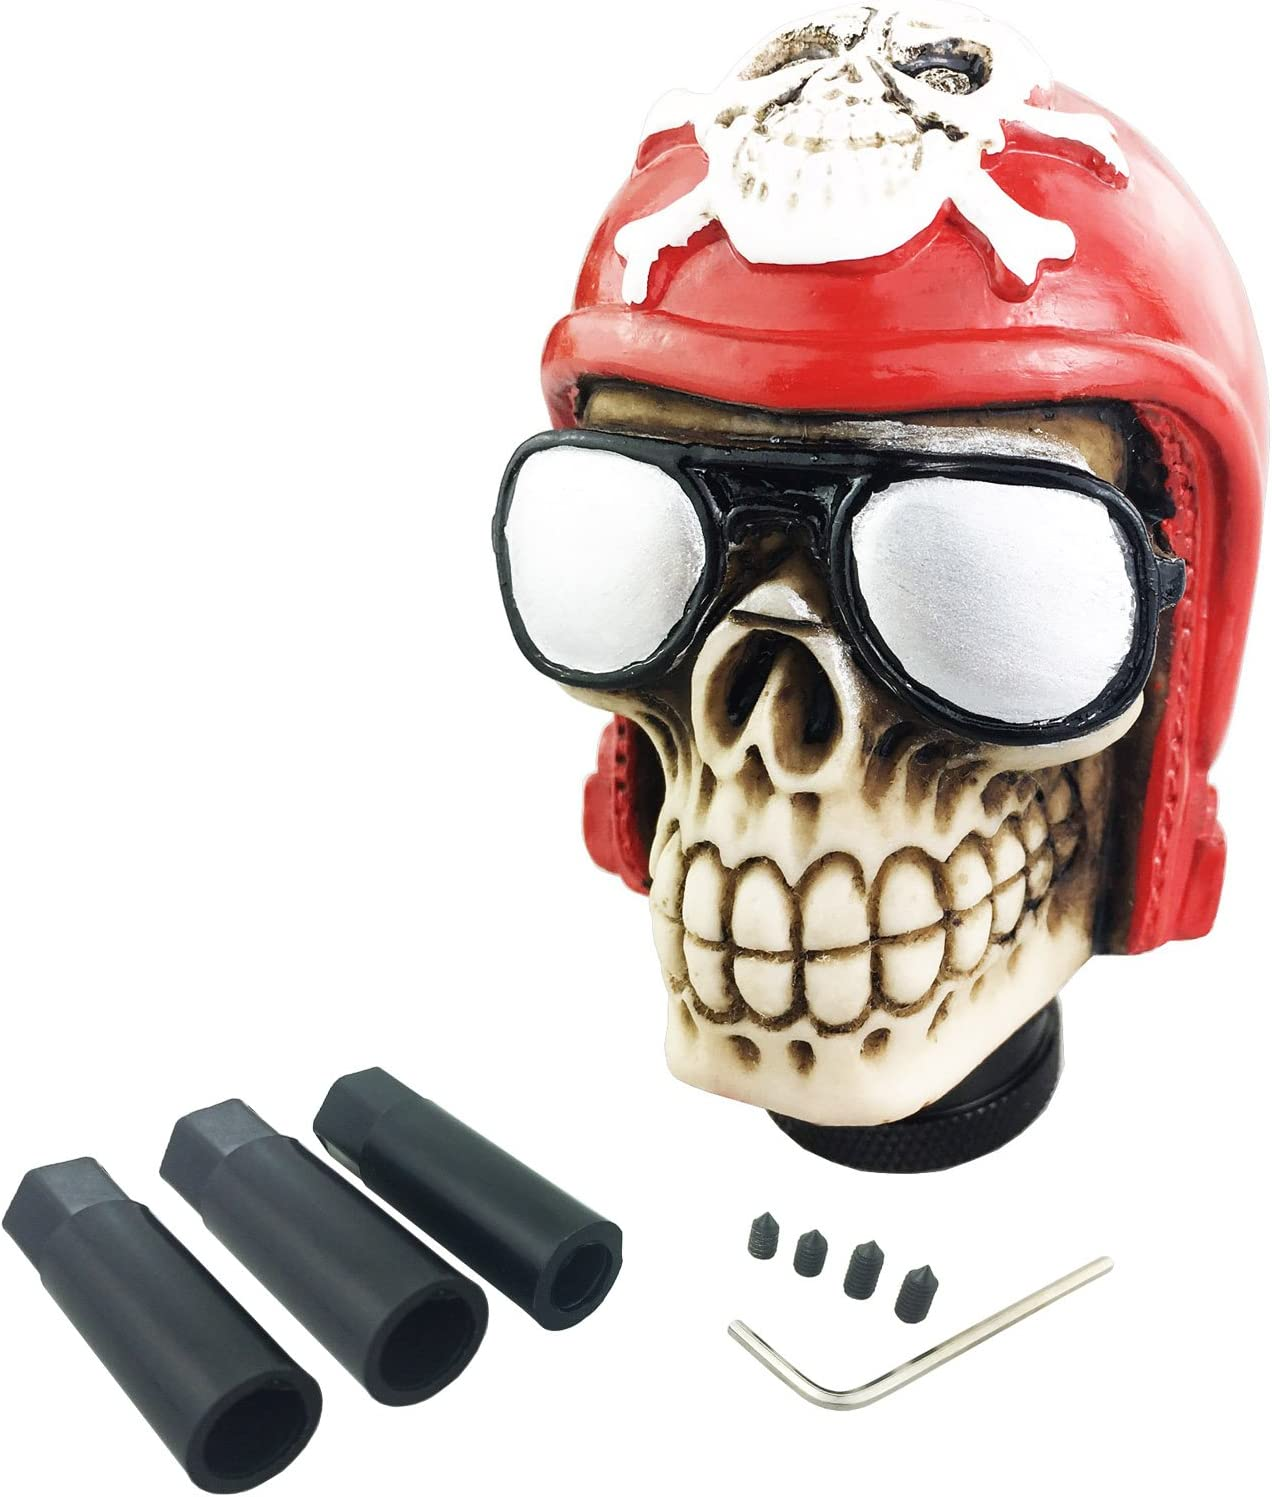 Arenbel Skull Manual Gear Knob Pattern Style Stick Shift Knobs Lever Shifting Shifter Head fit Most Automatic Cars Red